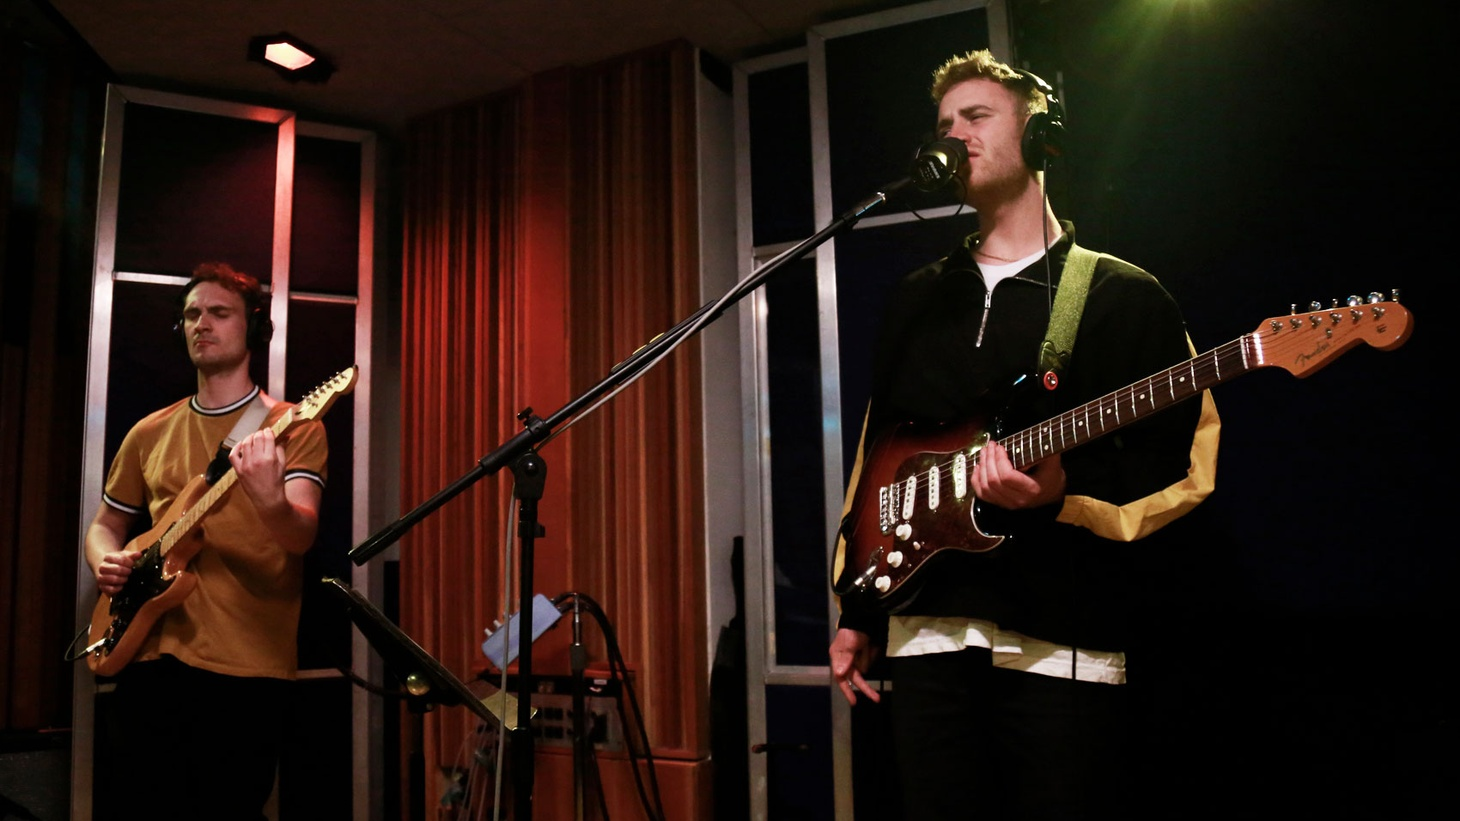 """Tom Misch was voted """"Best New Artist"""" by KCRW's DJs in 2017. A musical chameleon who hopscotches across genres with ease, his first US radio session on MBE was epic. From that session we share """"It Runs Through Me."""""""